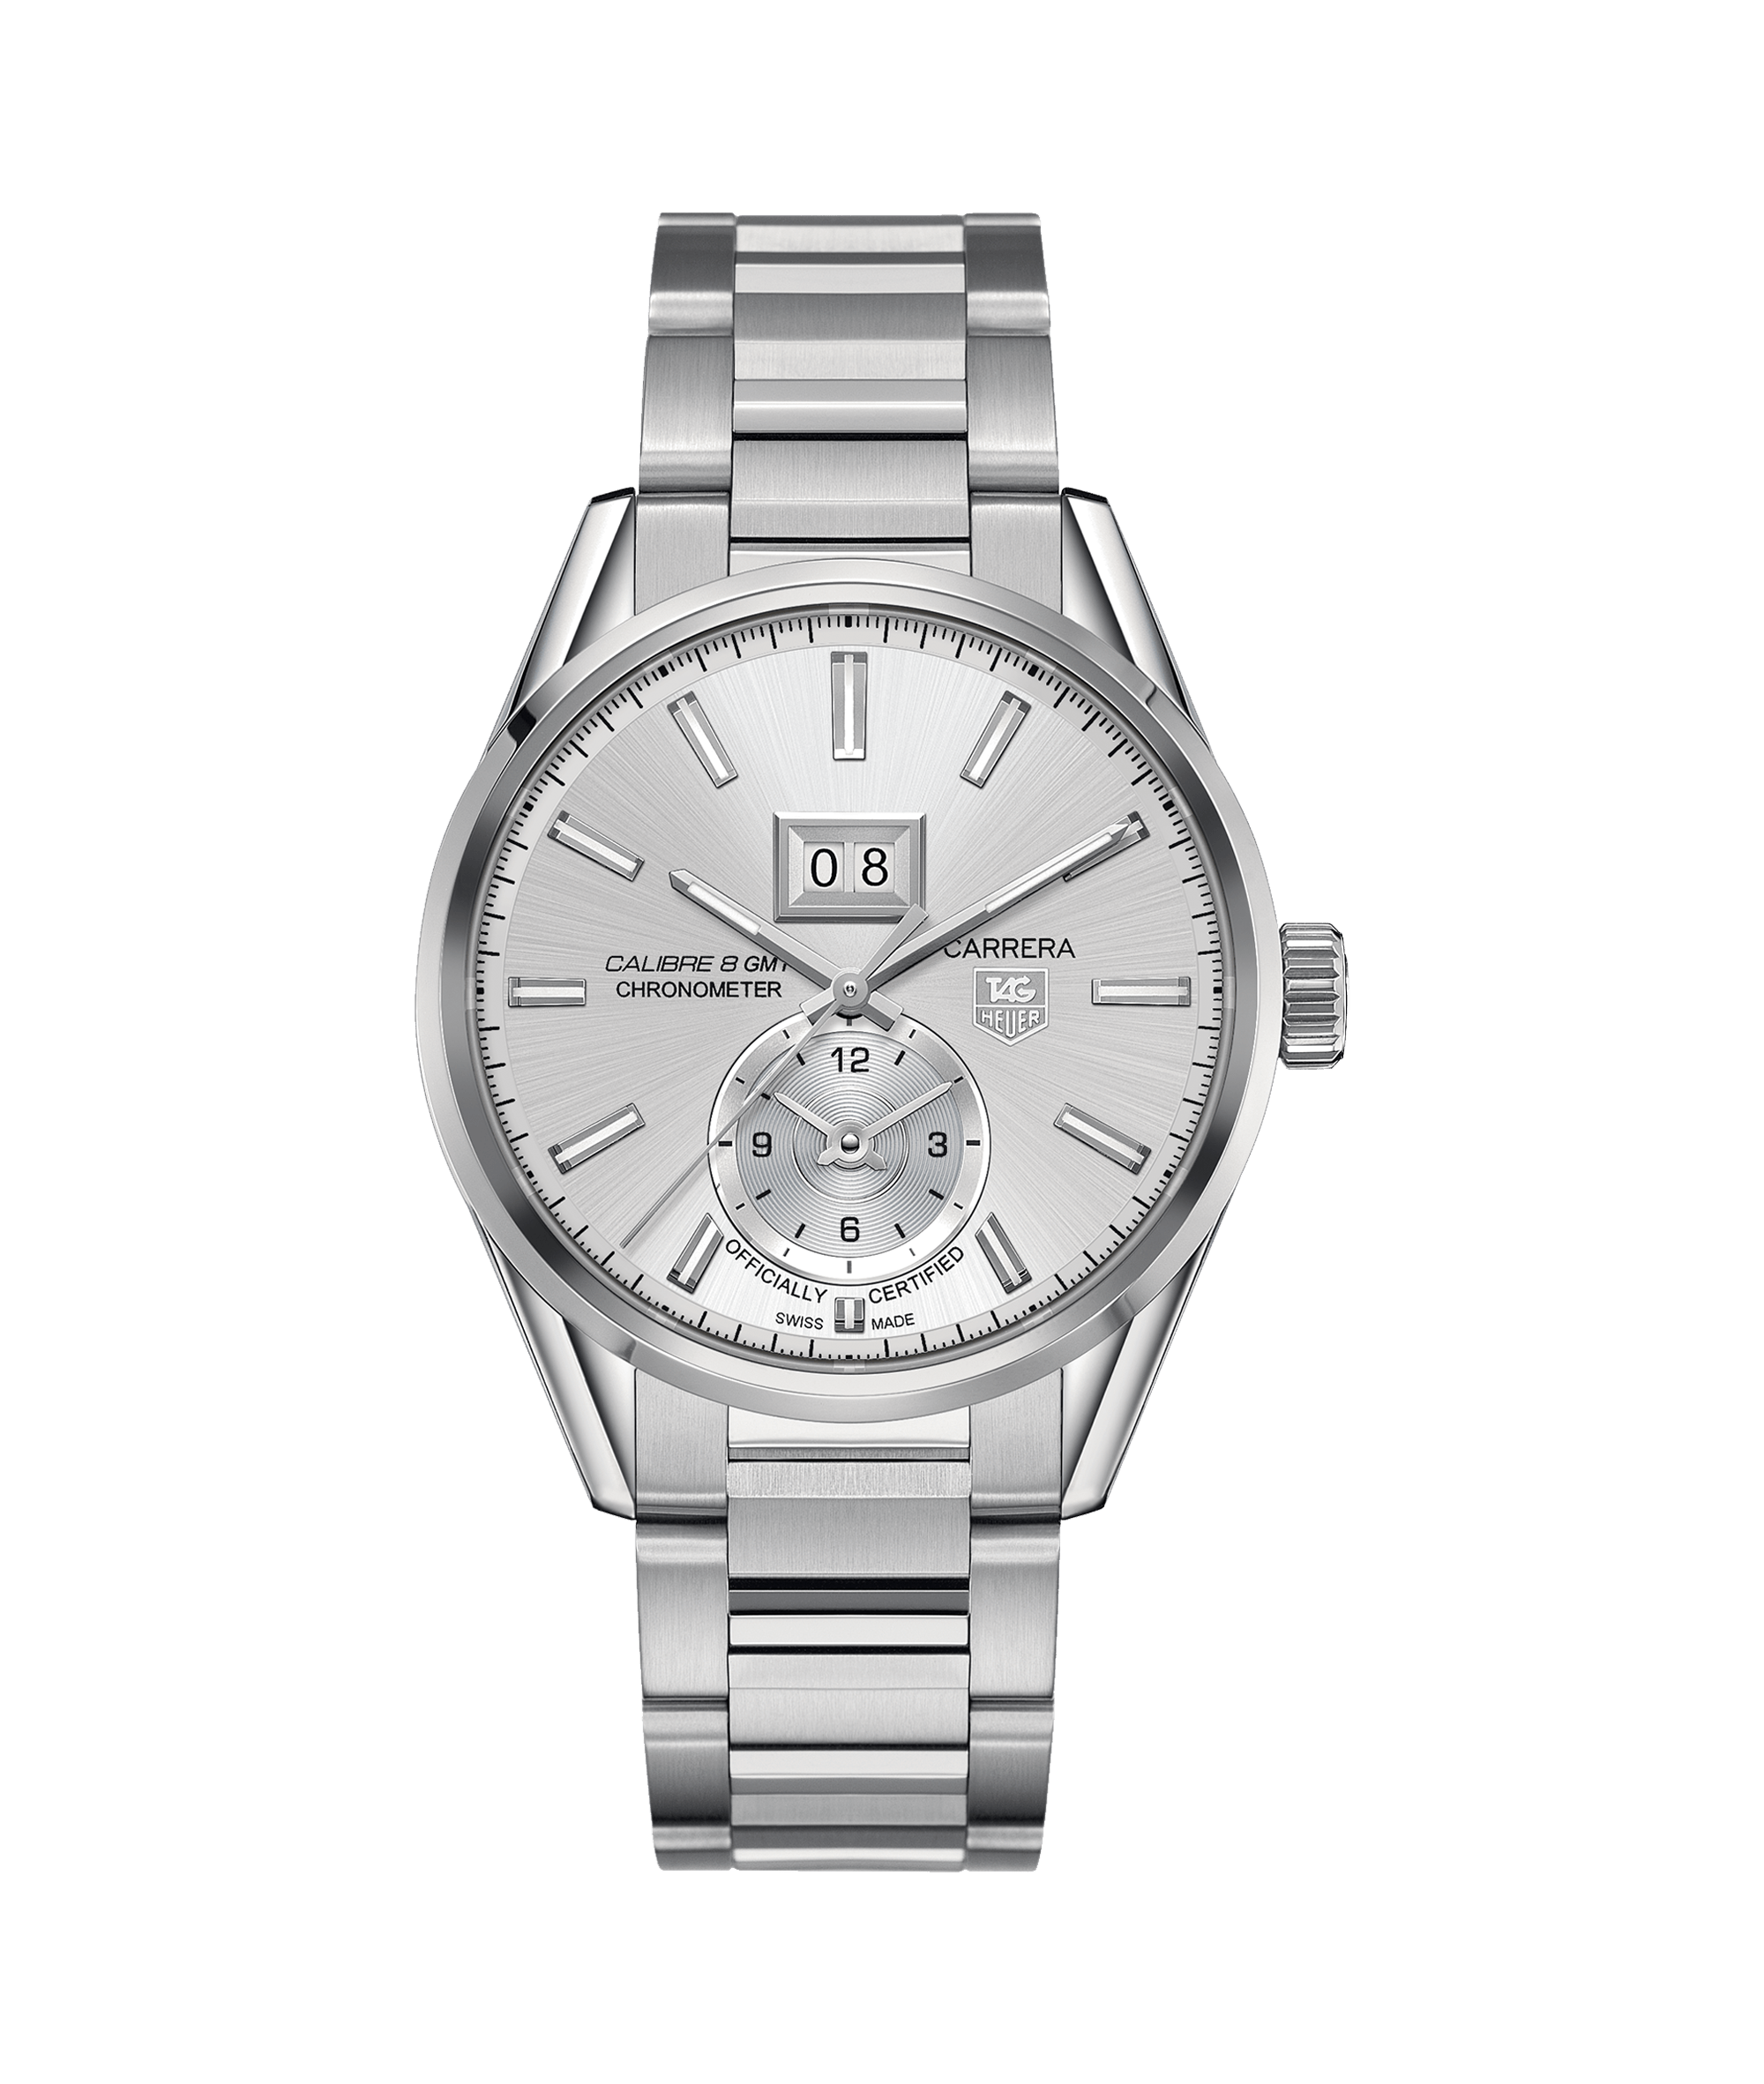 Tag Heuer Carrera Calibre 8 Gmt Automatic Watch